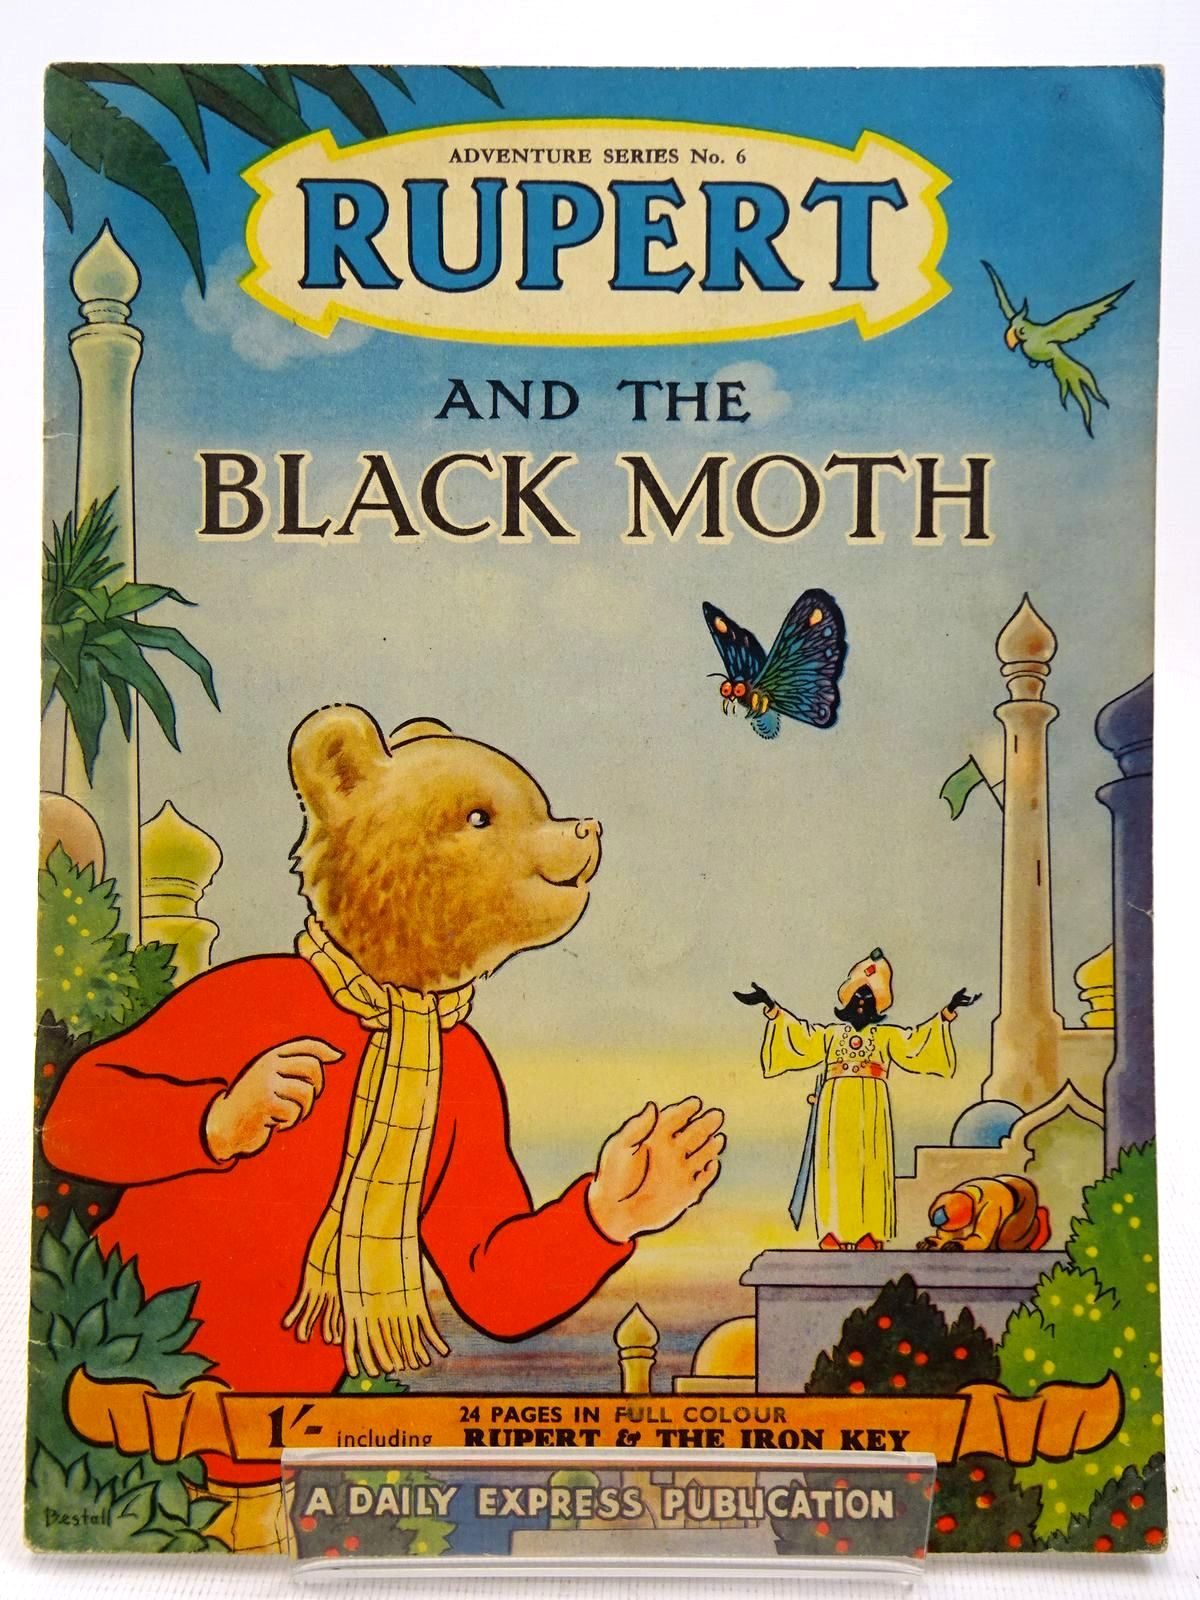 Photo of RUPERT ADVENTURE SERIES No. 6 - RUPERT AND THE BLACK MOTH written by Bestall, Alfred illustrated by Bestall, Alfred published by Daily Express (STOCK CODE: 2128598)  for sale by Stella & Rose's Books